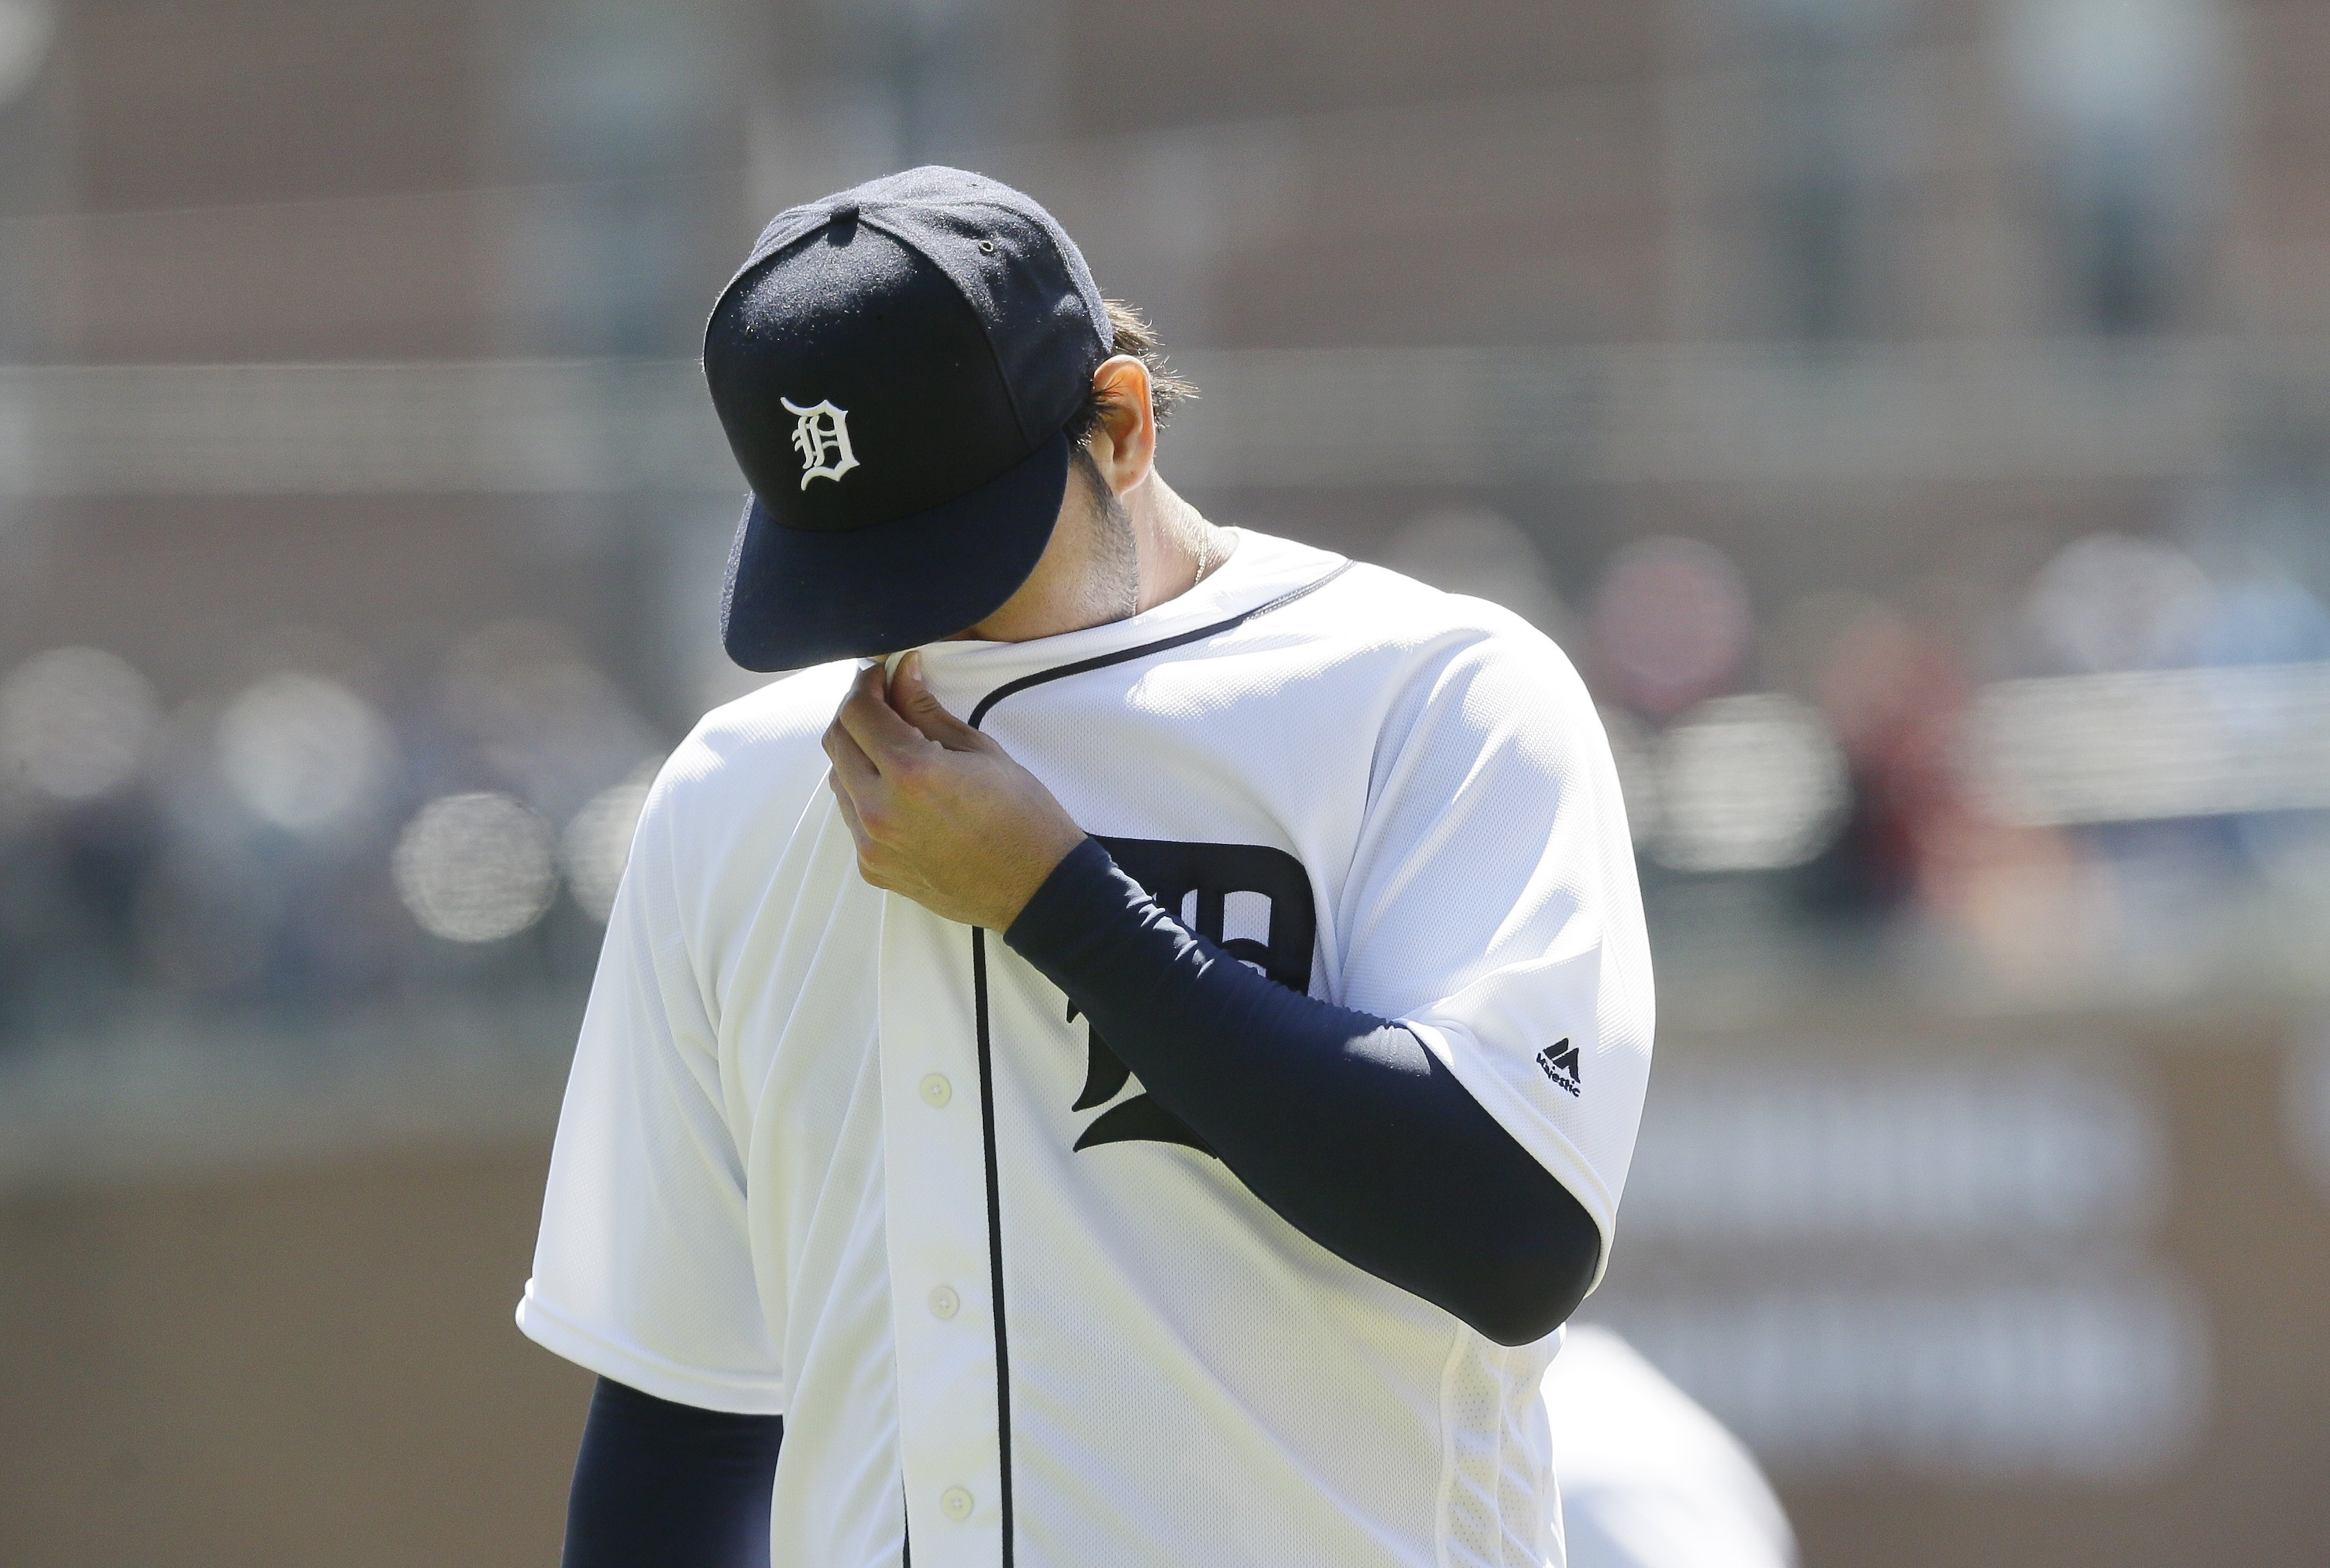 Detroit Tigers starting pitcher Anibal Sanchez wipes his face as he walks back to the dugout during the first inning of a baseball game against the Cleveland Indians, Saturday, April 23, 2016, in Detroit. Sanchez gave up three runs to the Indians in the i